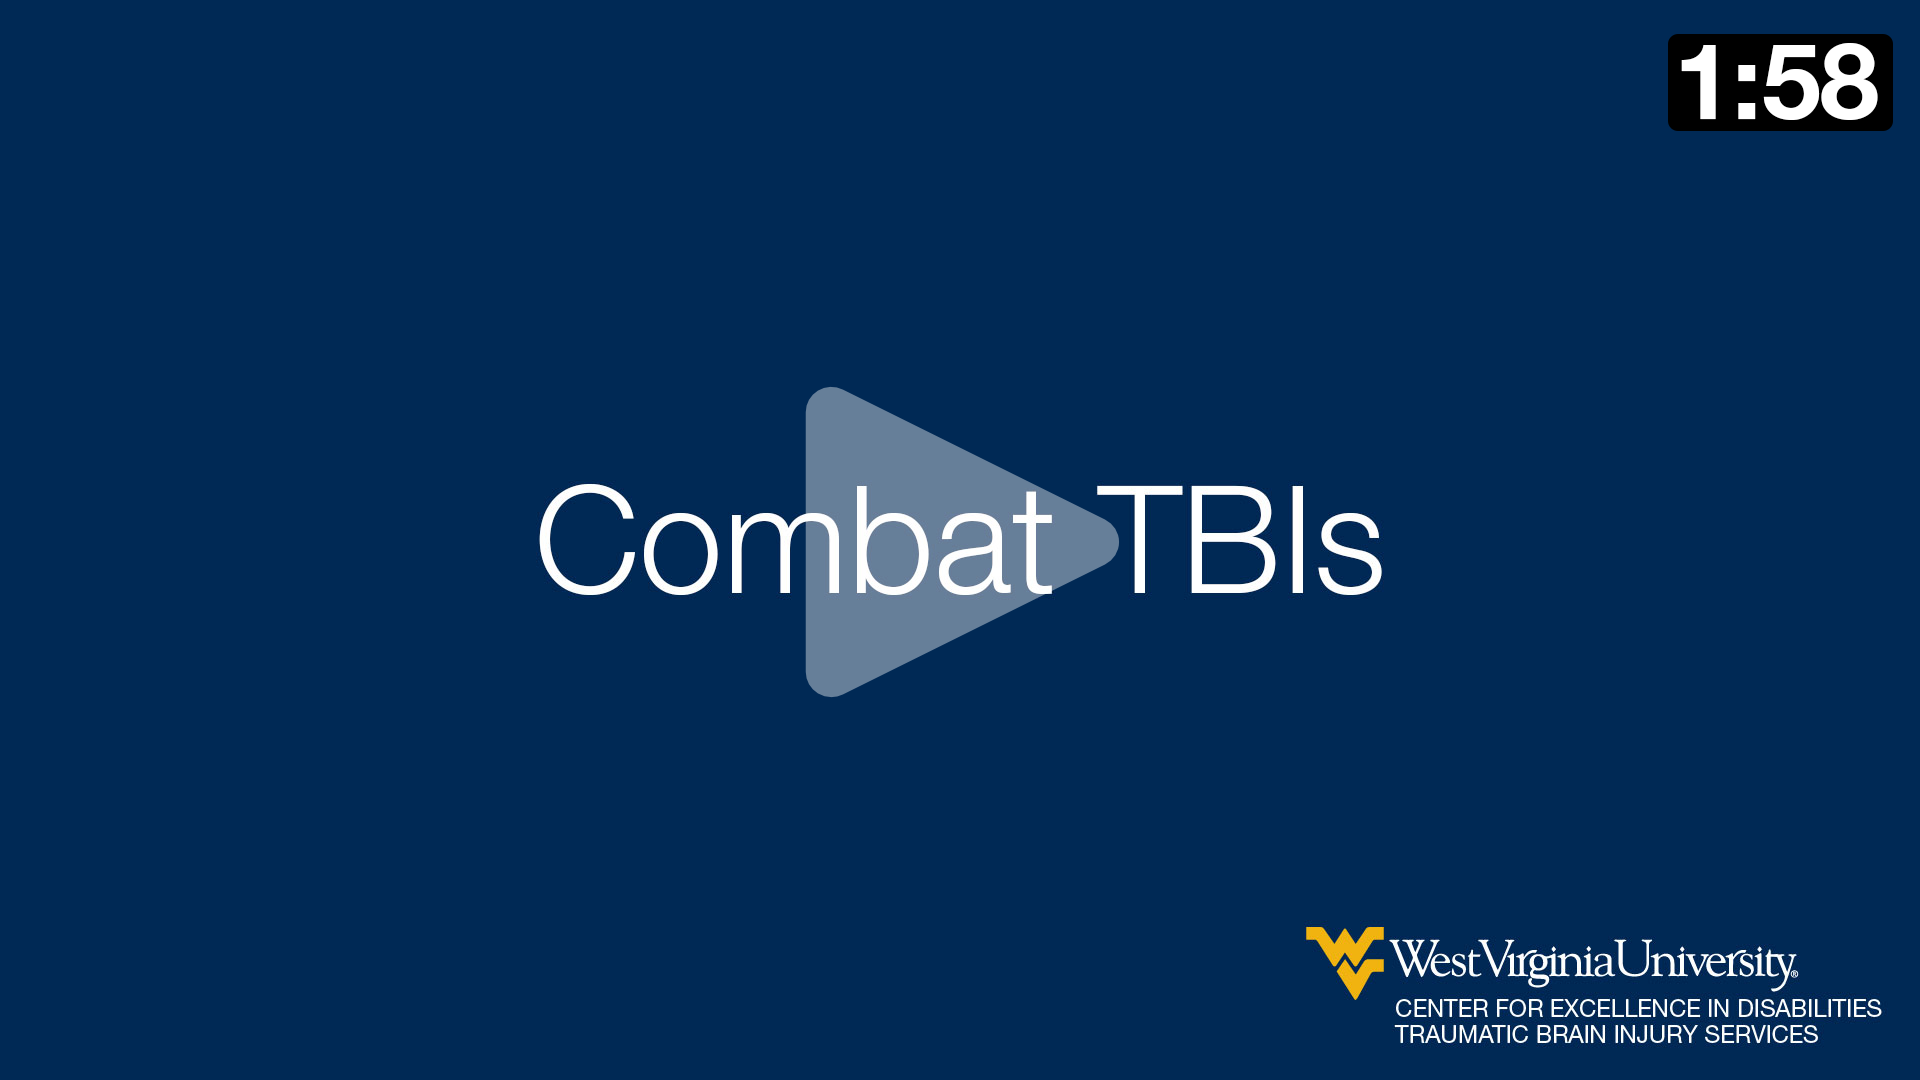 Stephen Heck talks about combat TBIs